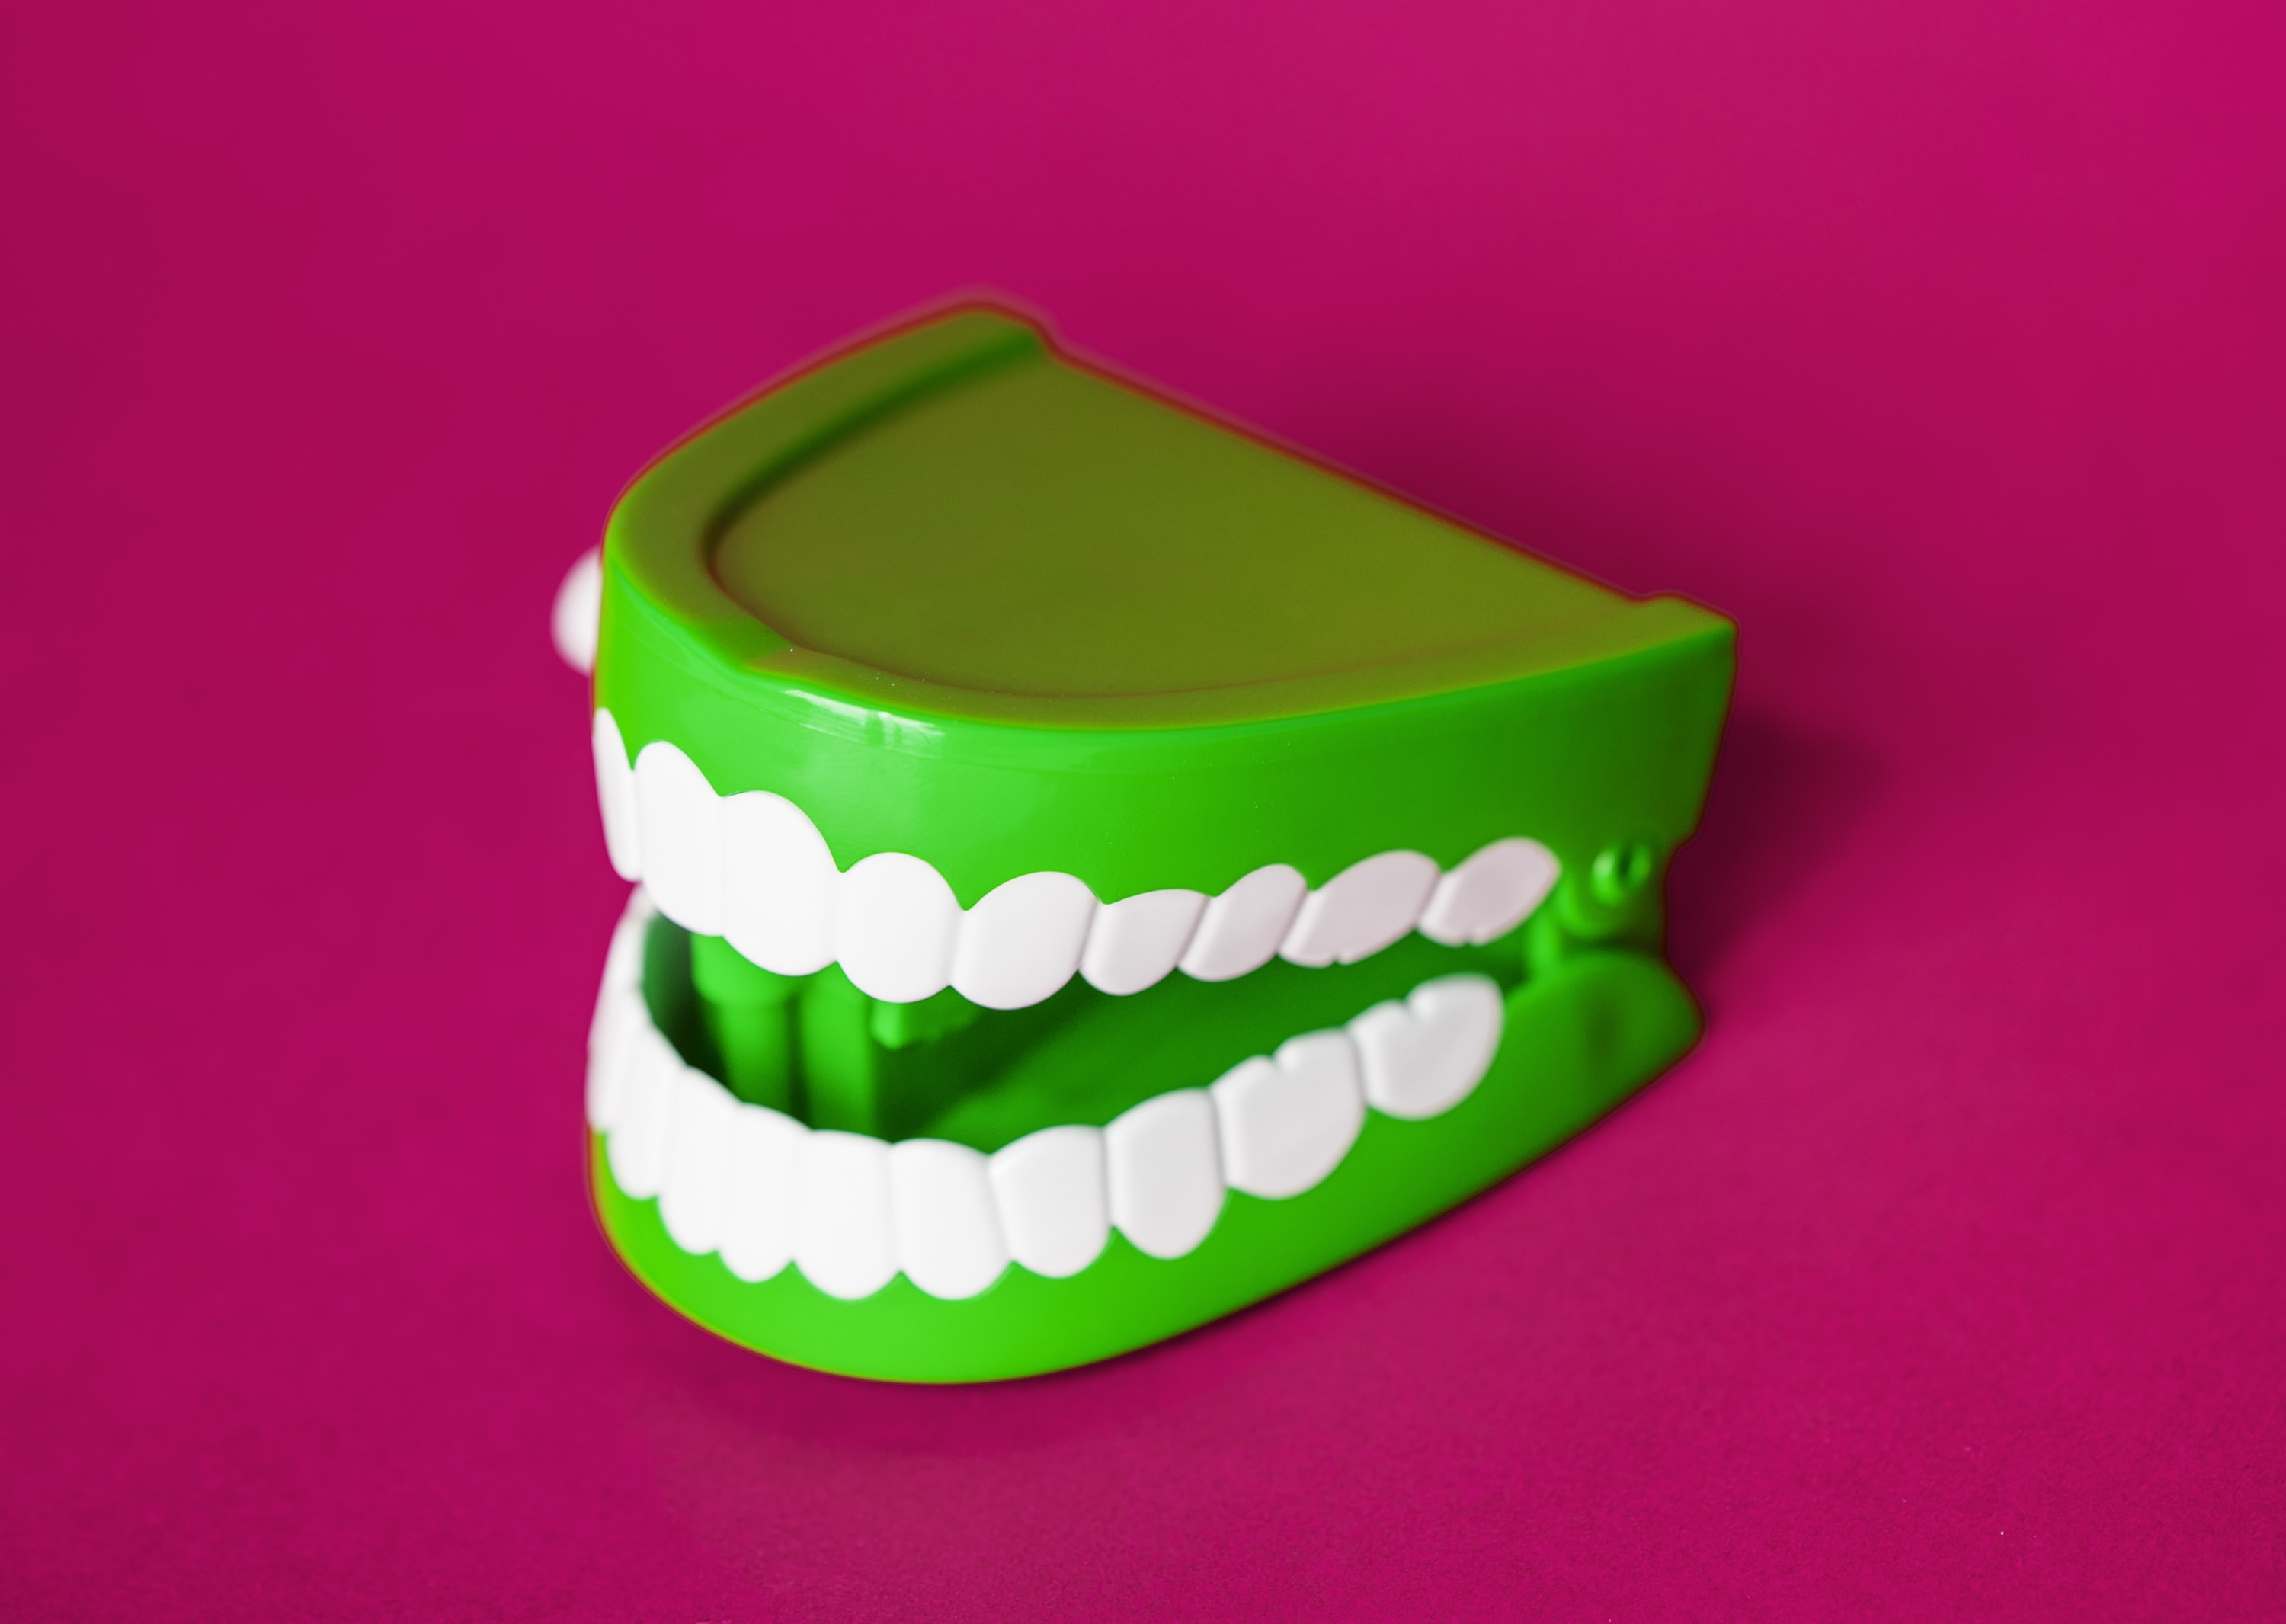 green denture toy